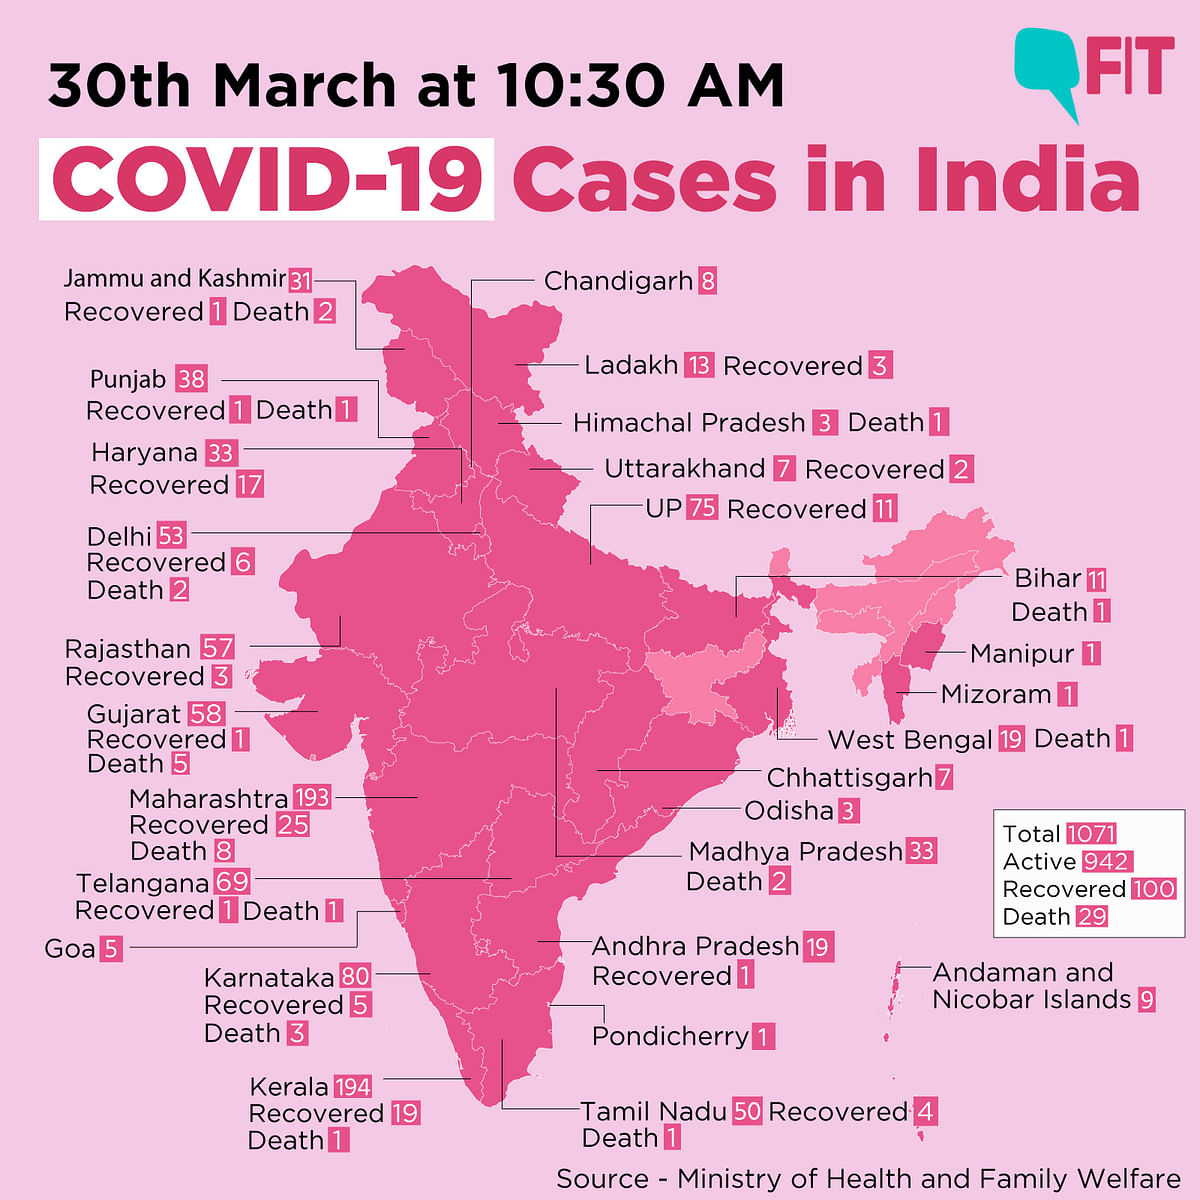 COVID-19 India Updates: Total Cases Rise to 1071;  Deaths at 29